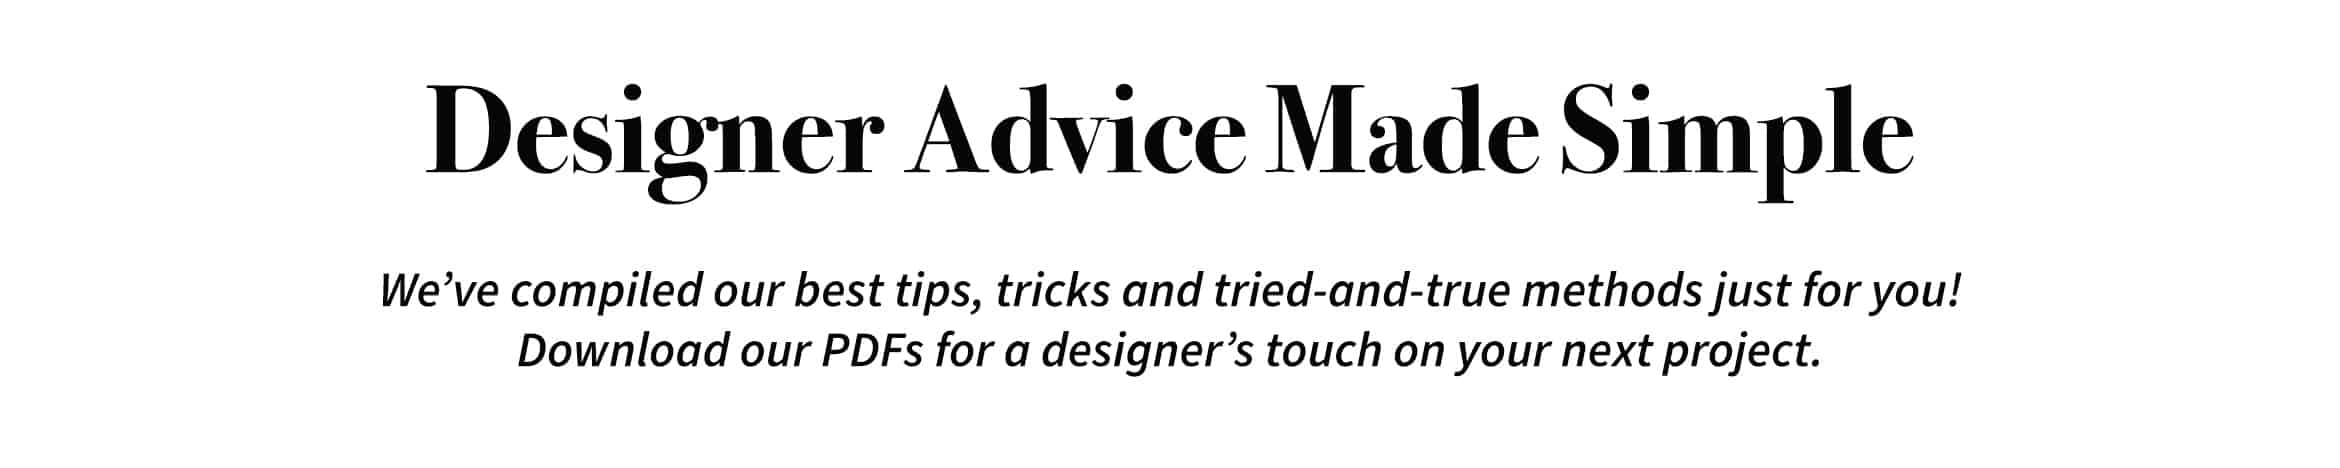 Desiner Advice Made Simple (Banner Image)